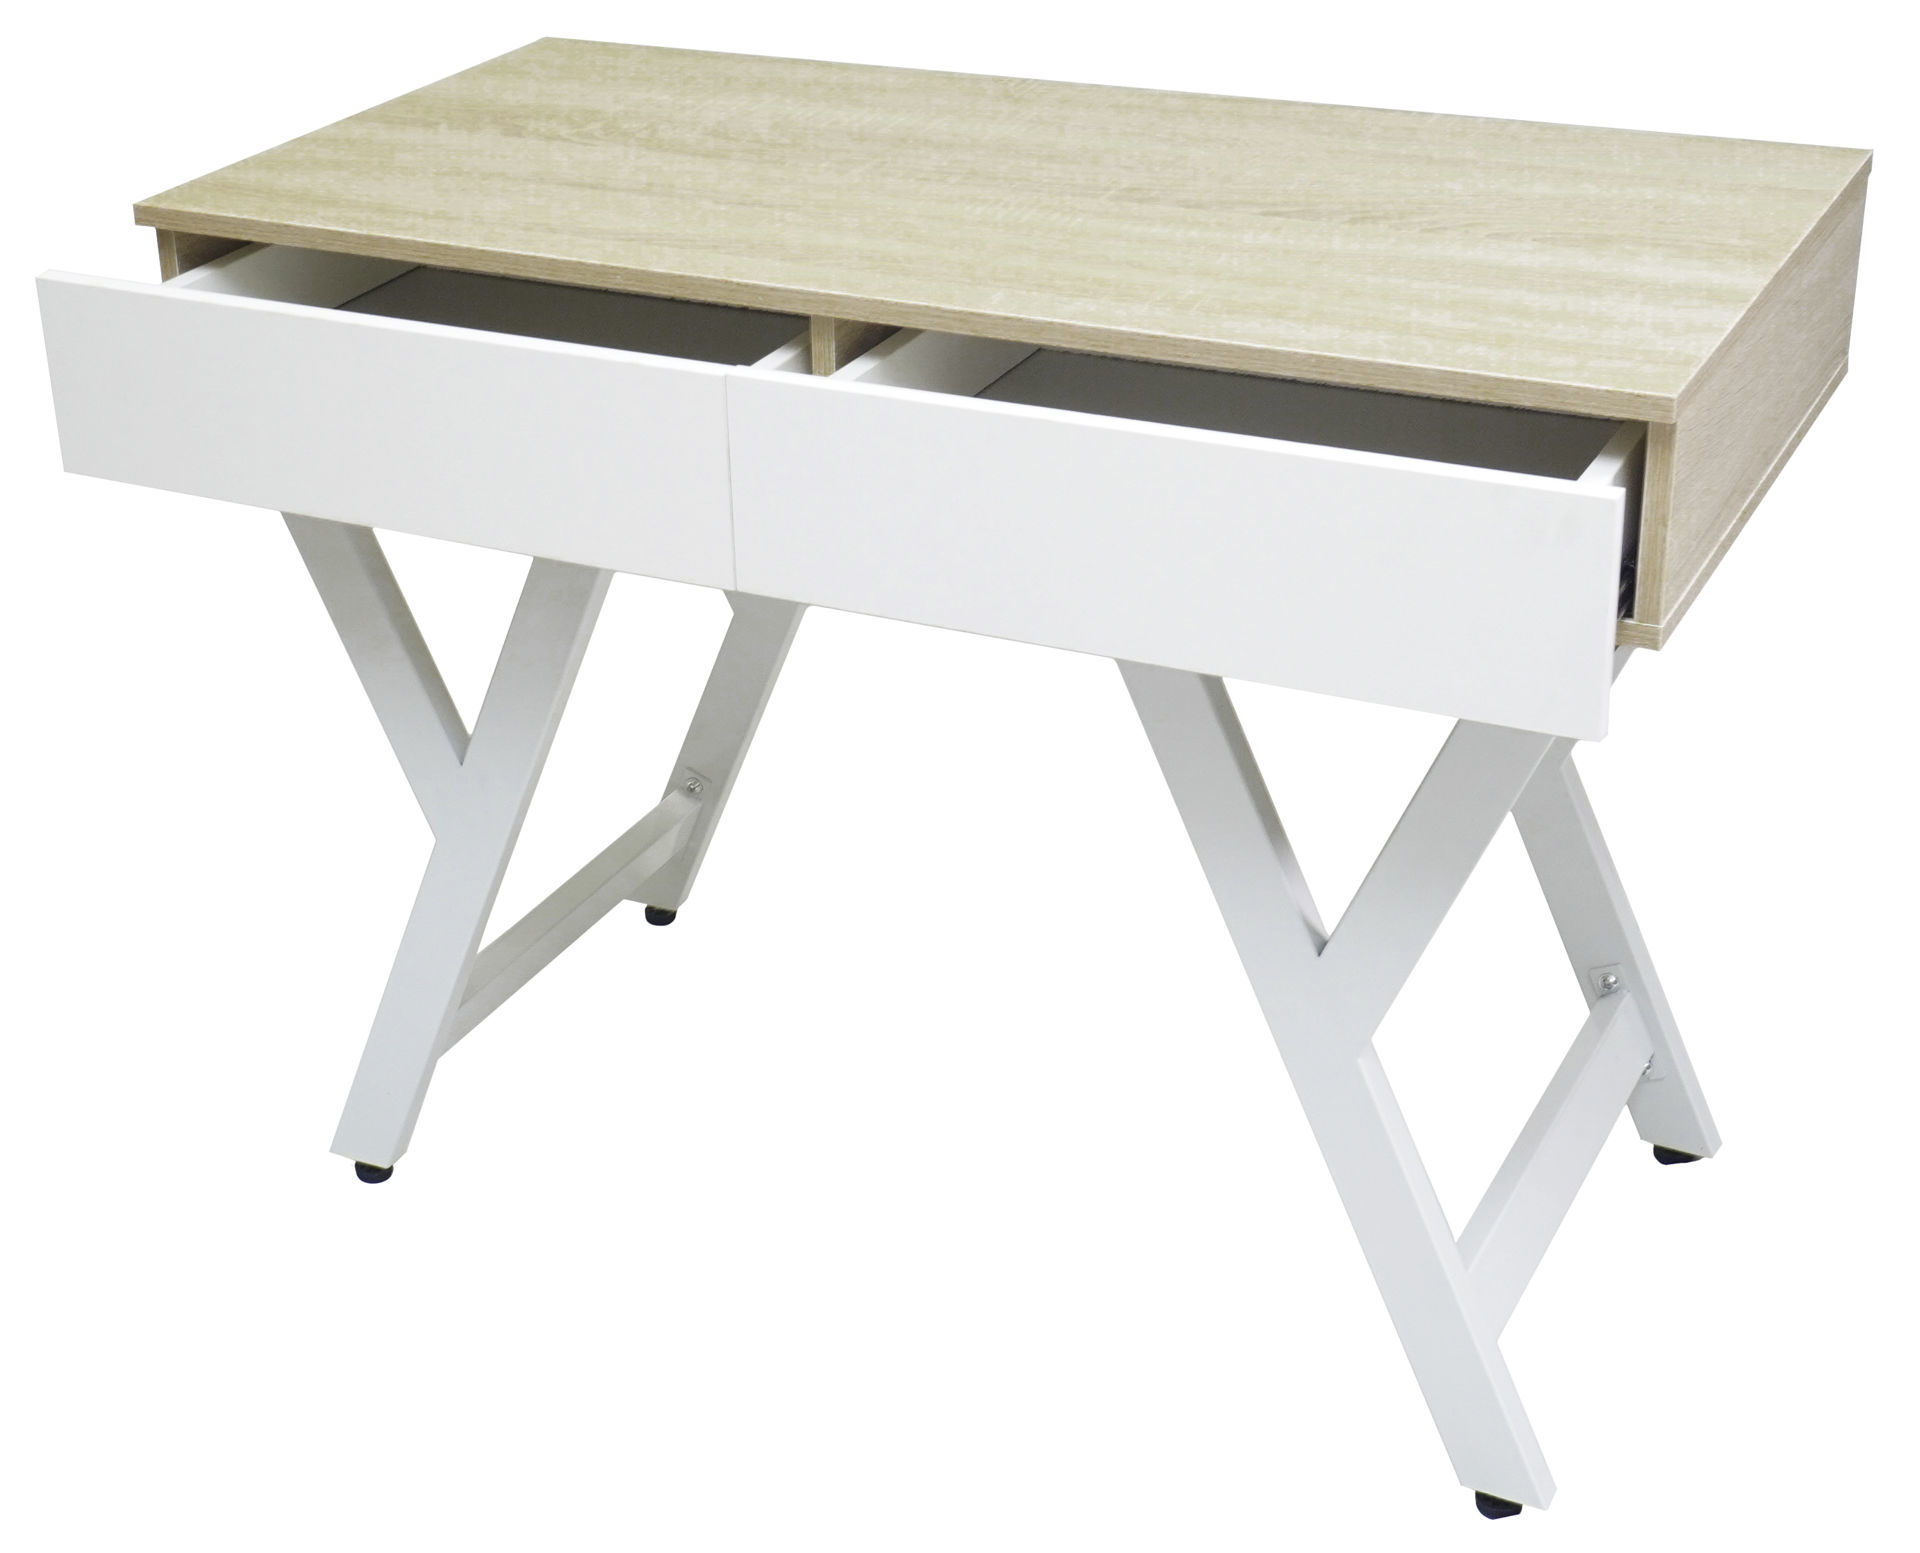 Picture of HX-465 Ulink 1000 x 500 Computer Desk w/Drawers - Pine